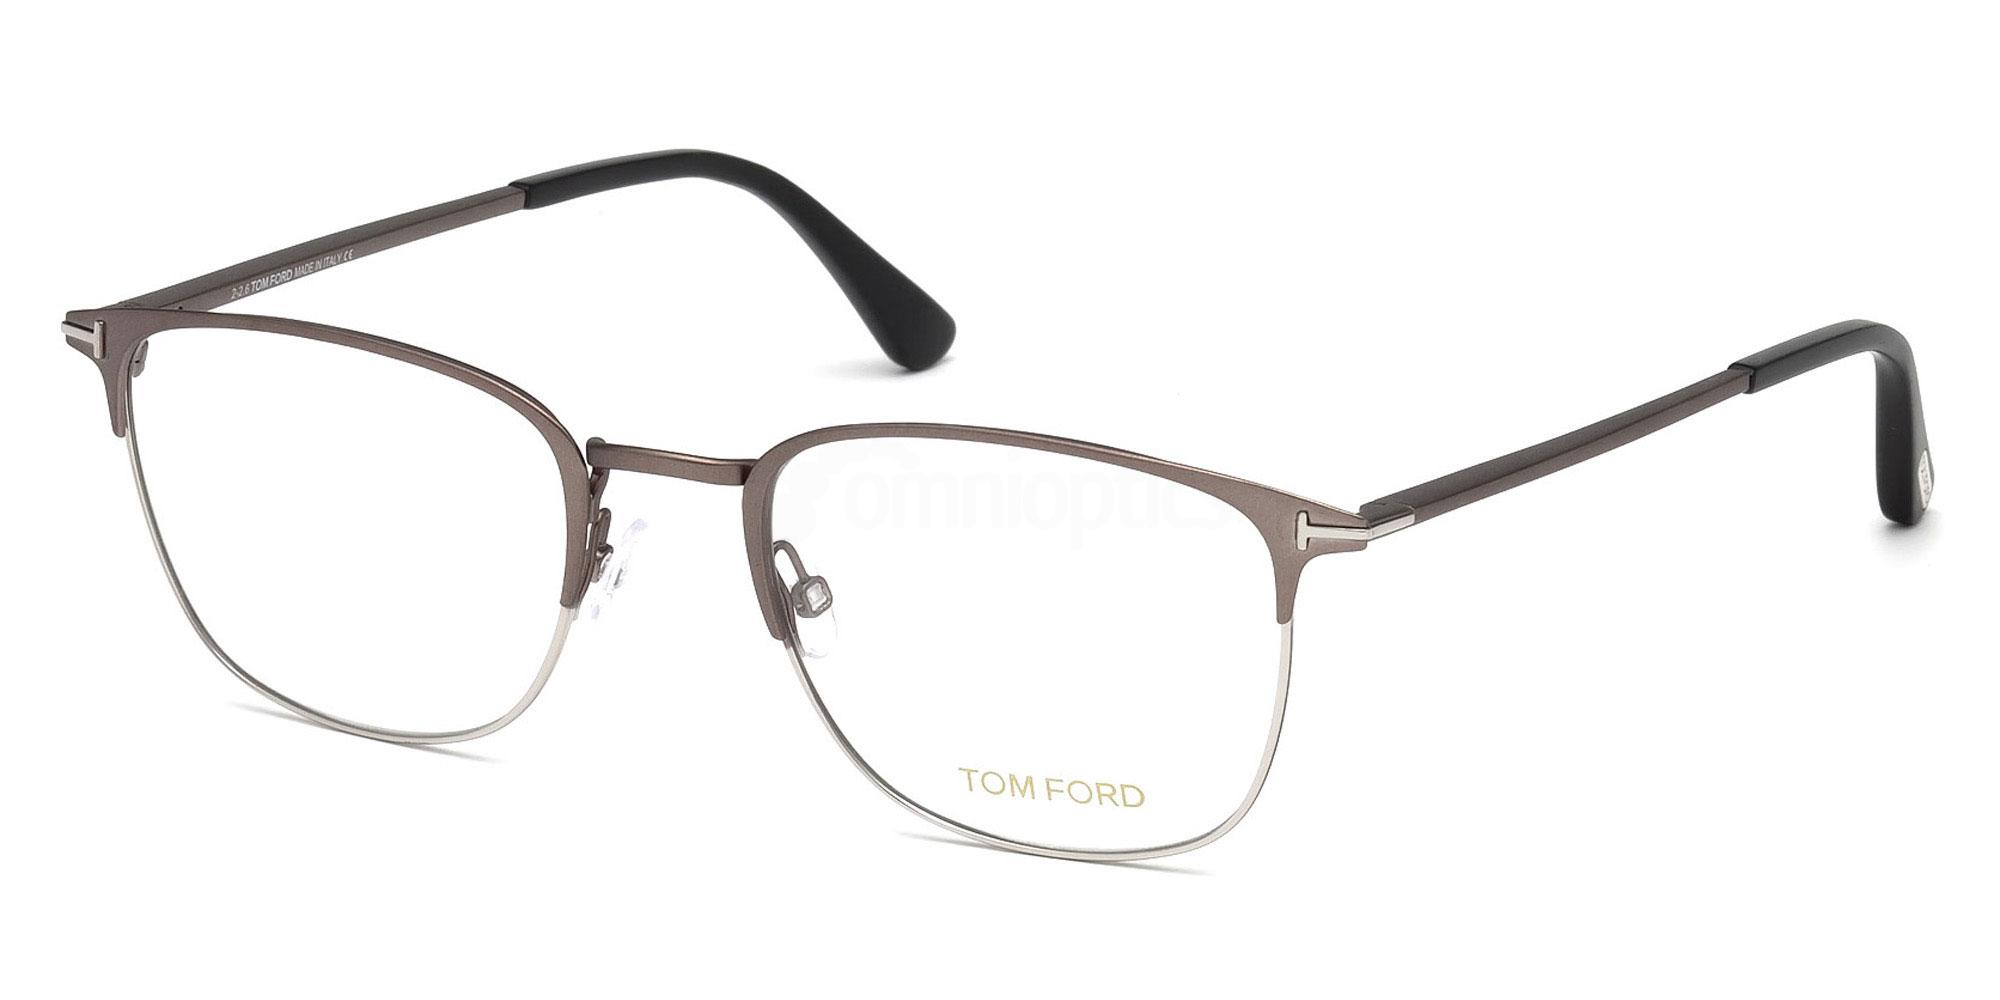 013 FT5453 Glasses, Tom Ford